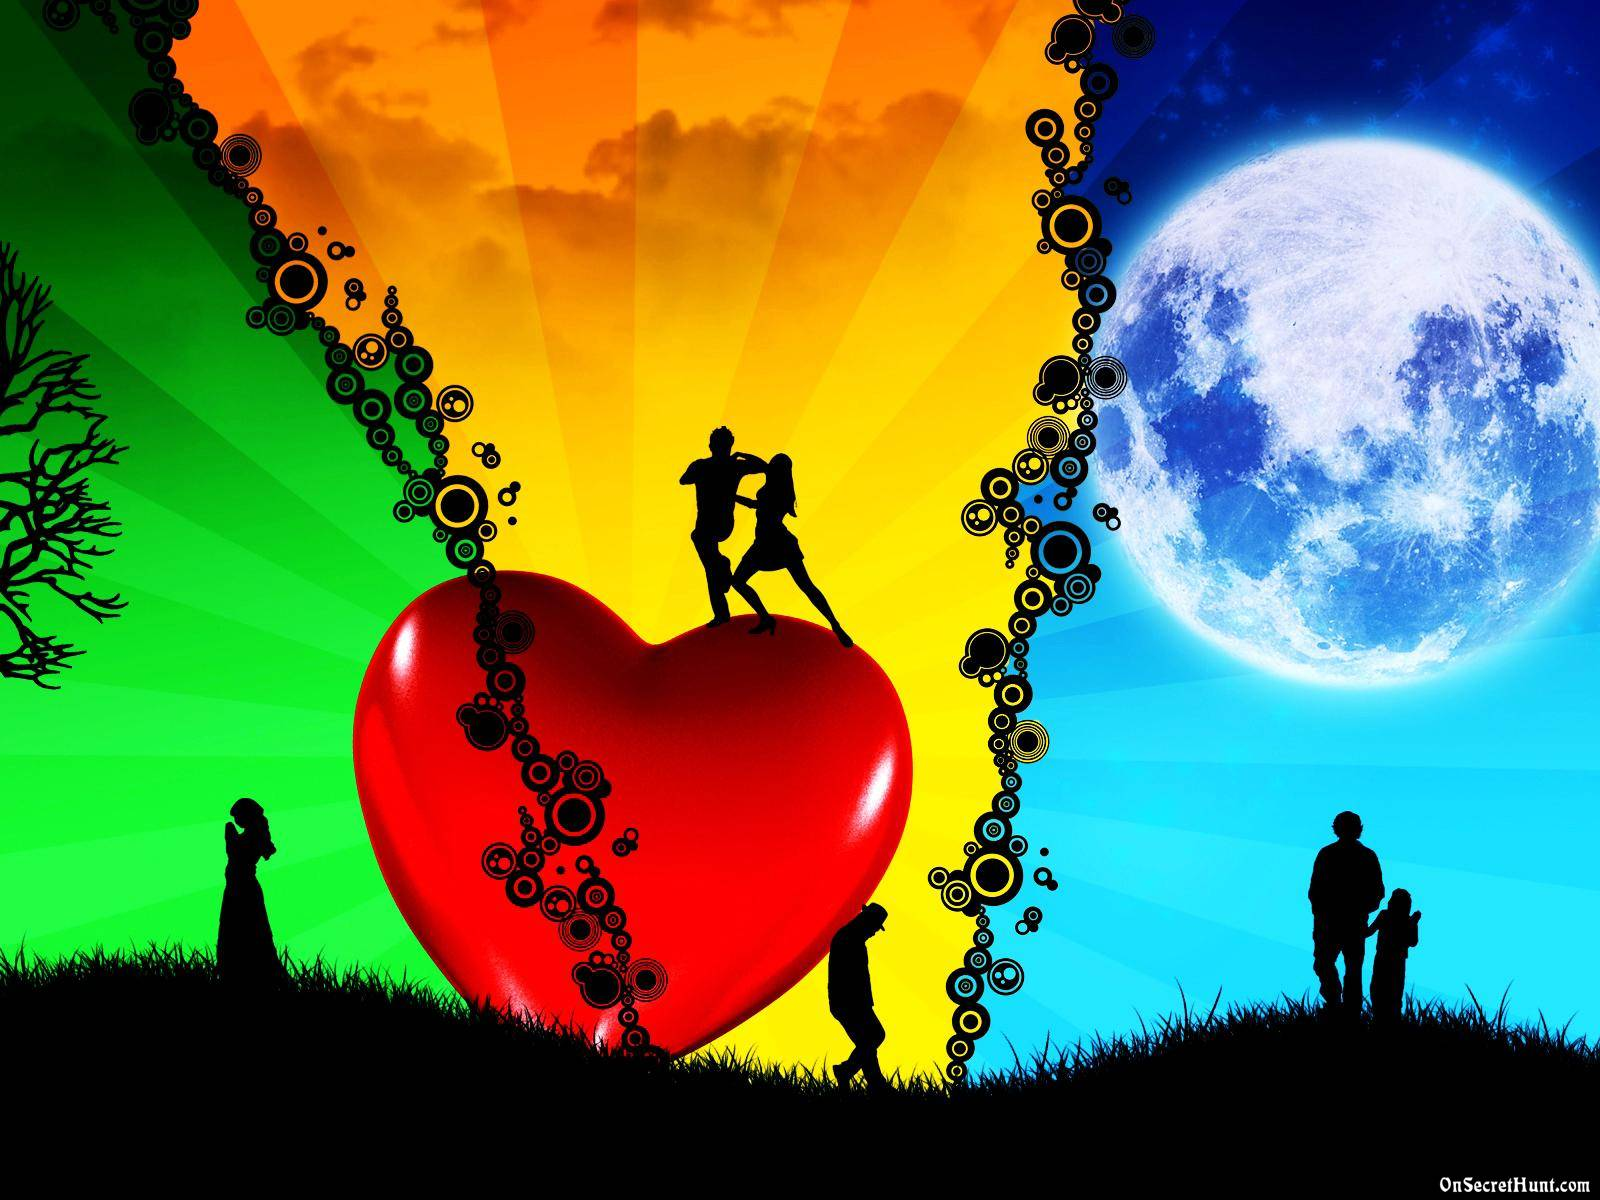 Love Wallpapers Large Size : Love Wallpapers 3D - Wallpaper cave